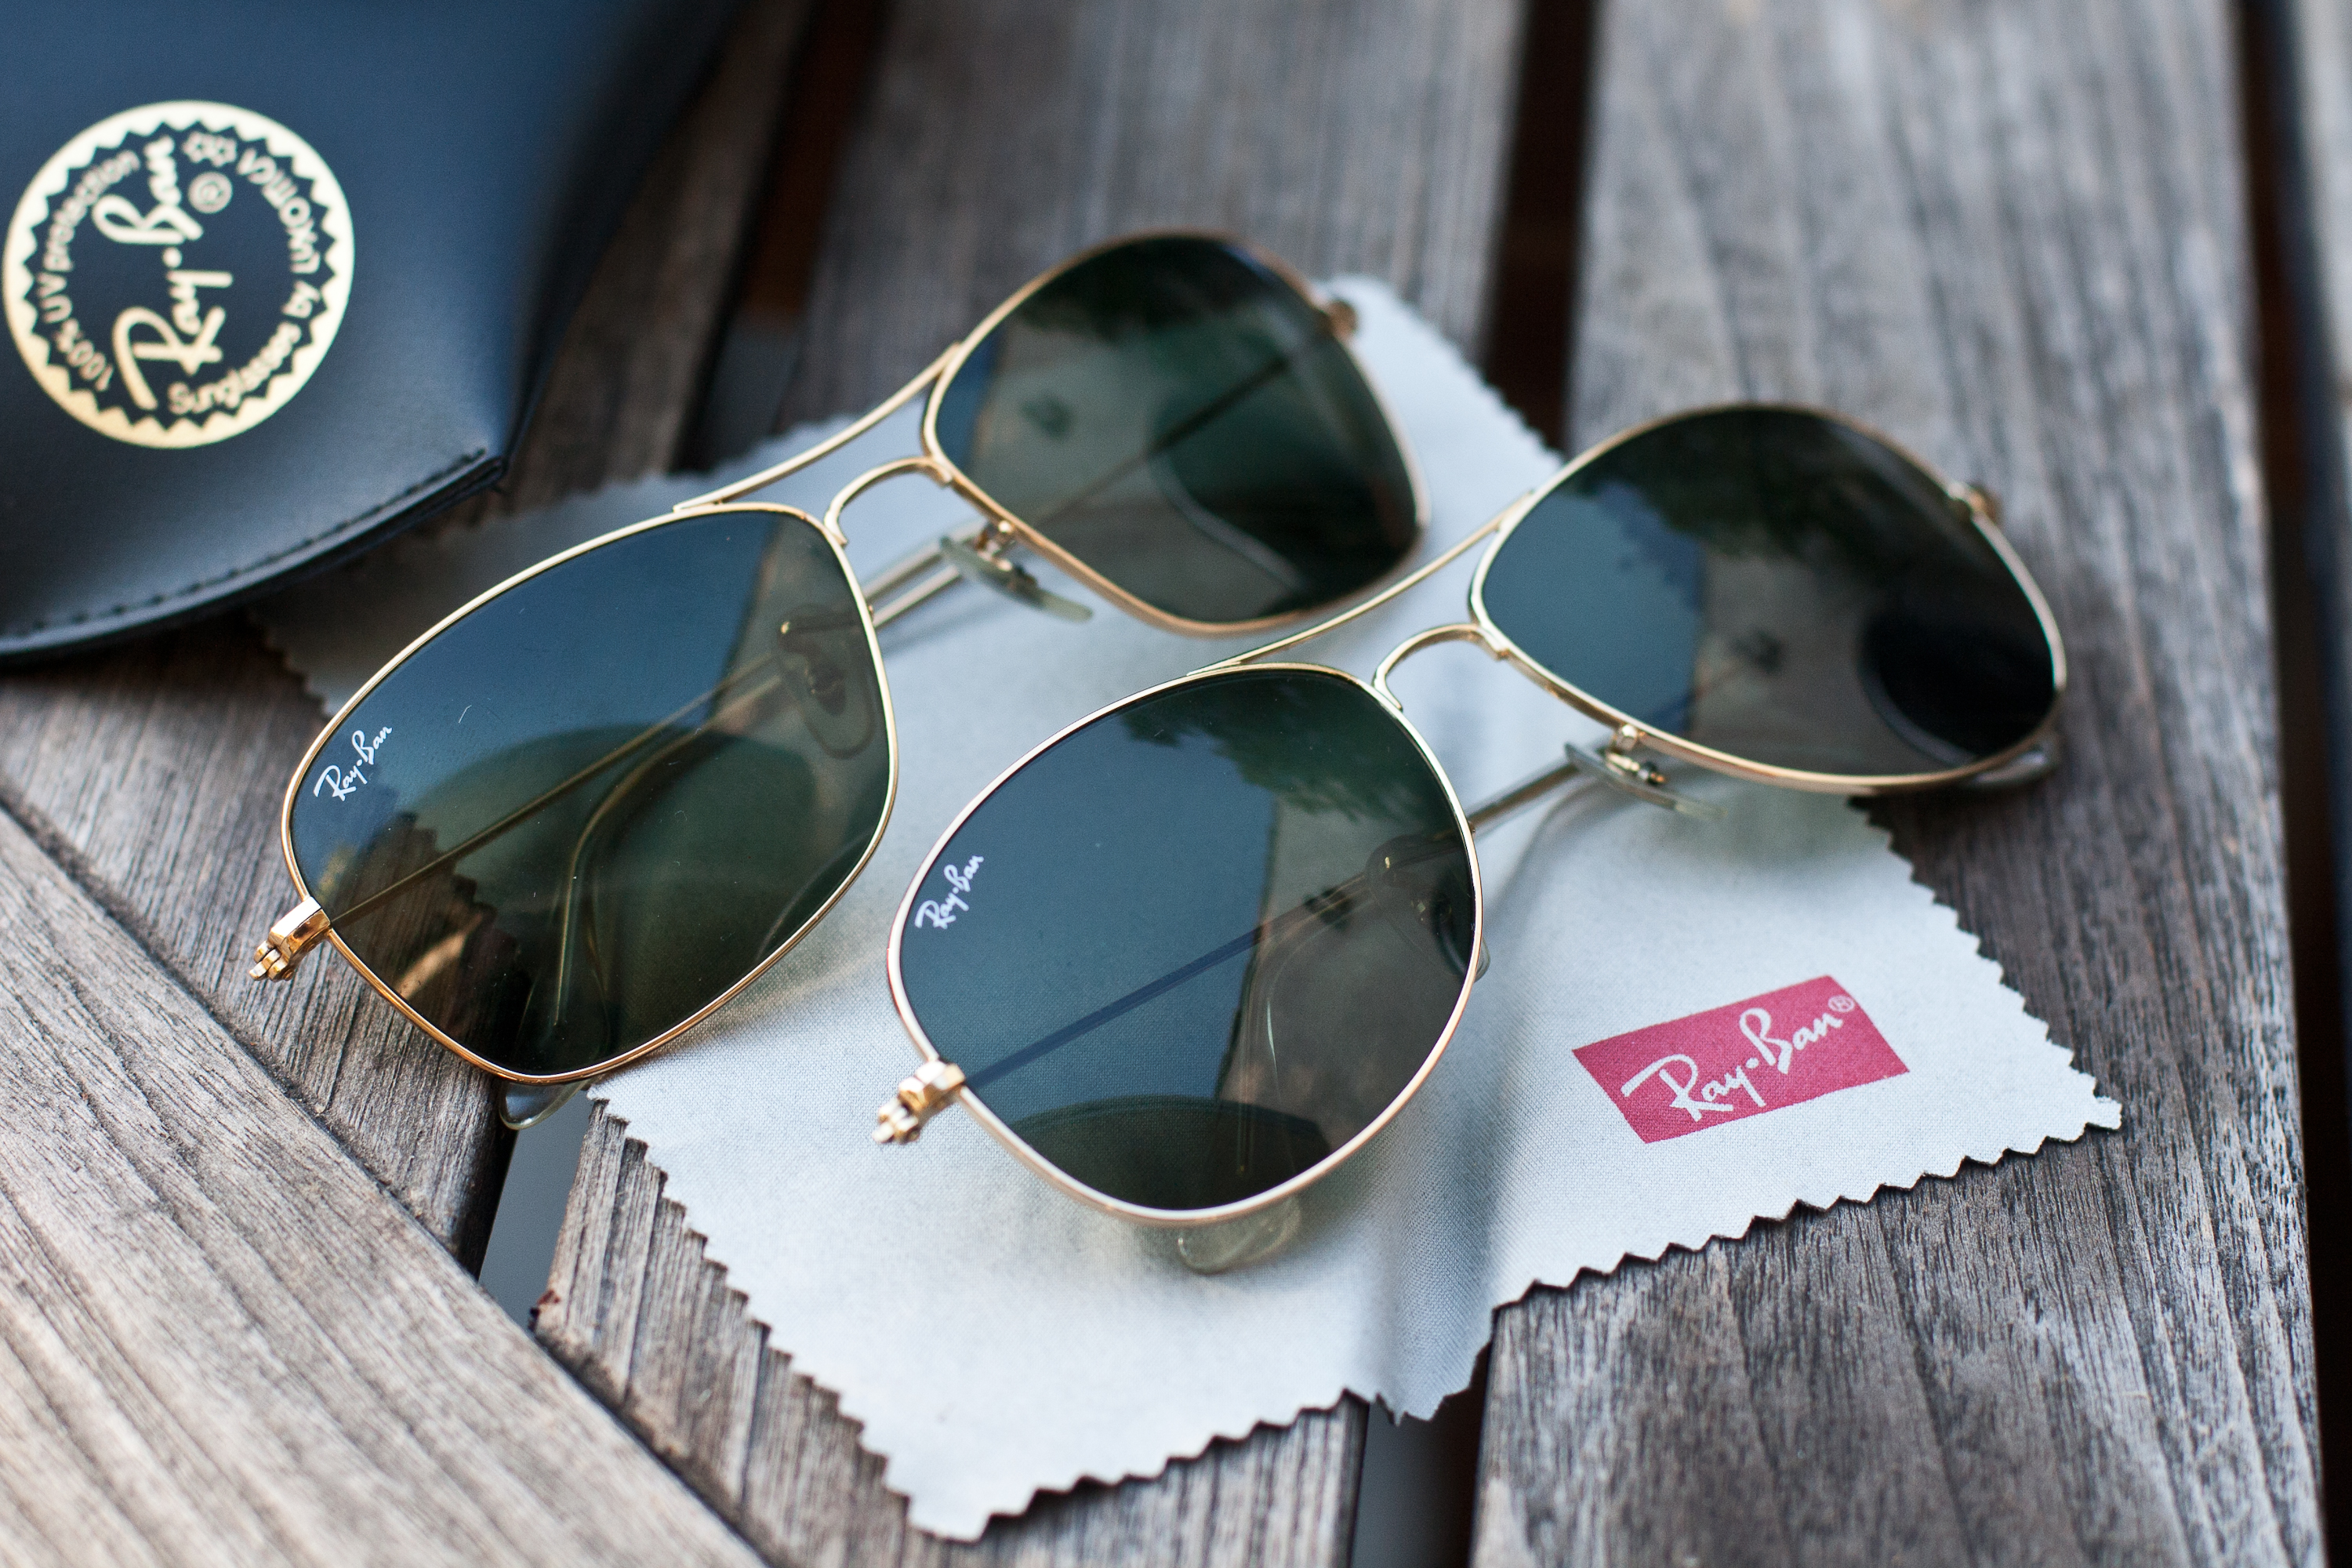 How to Clean Ray-Bans | Our Everyday Life